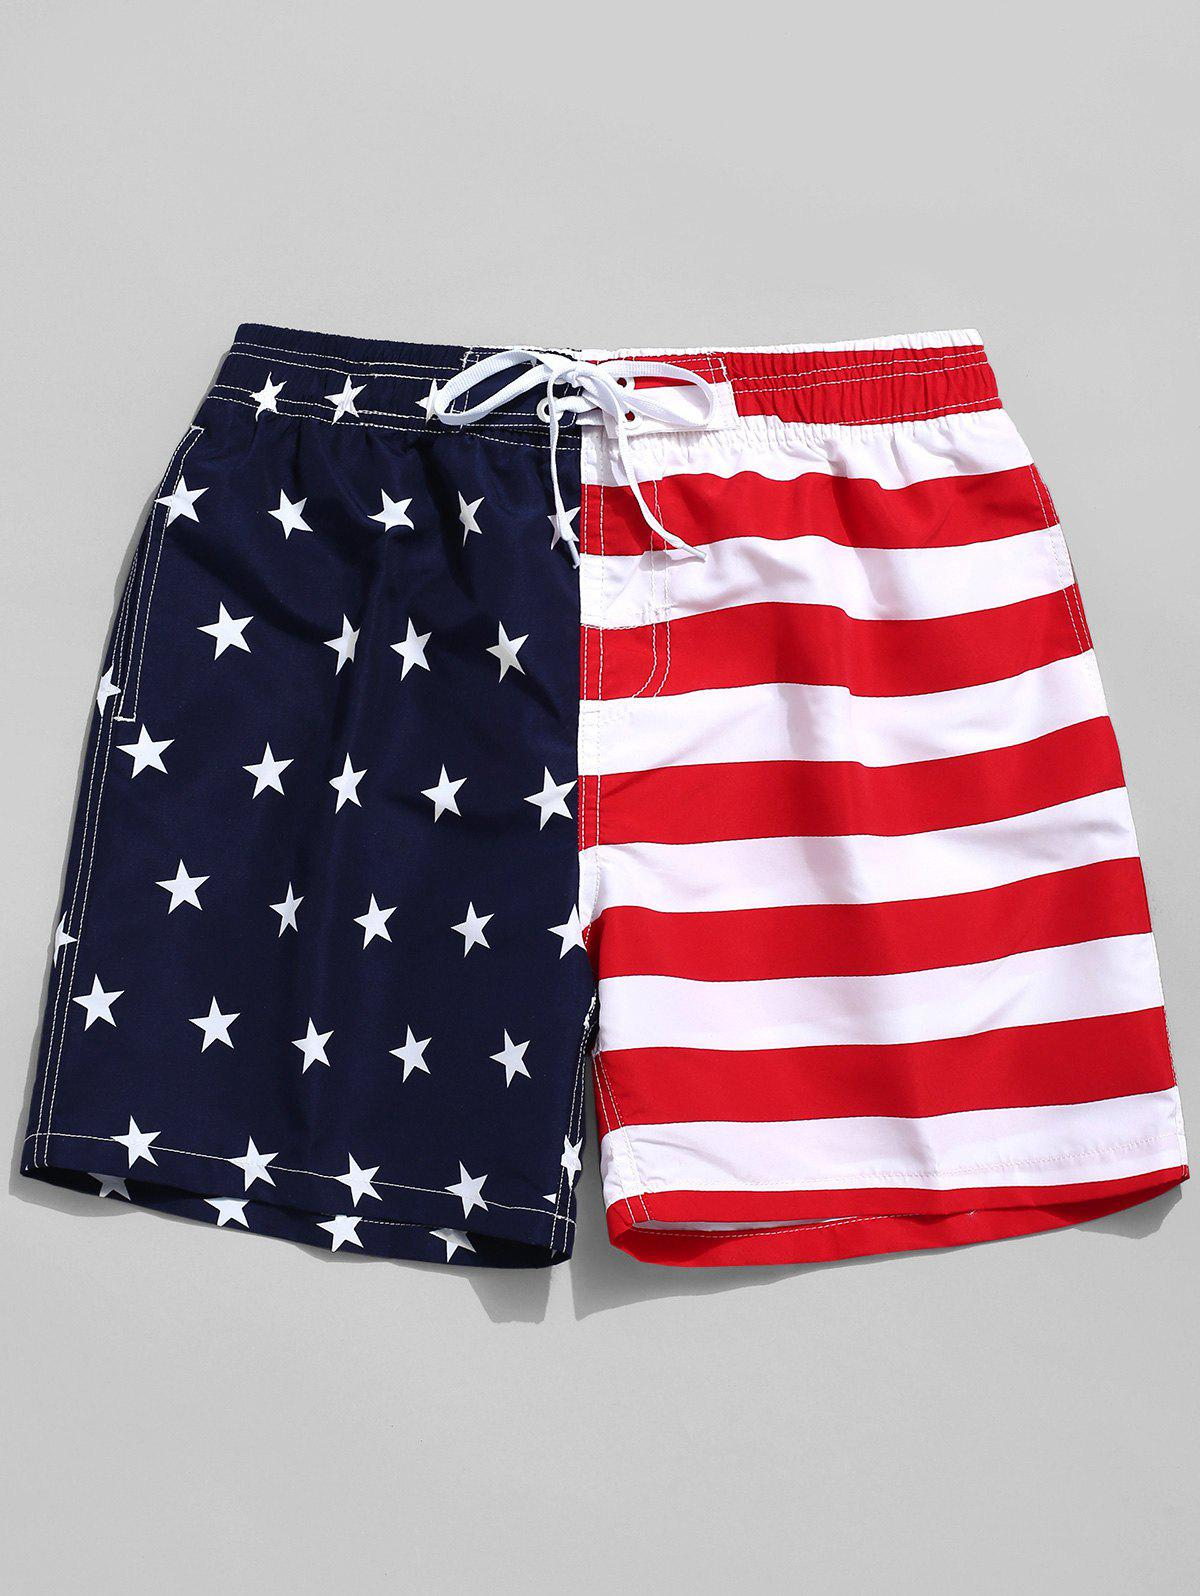 Shop American Flag Print Elastic Board Shorts